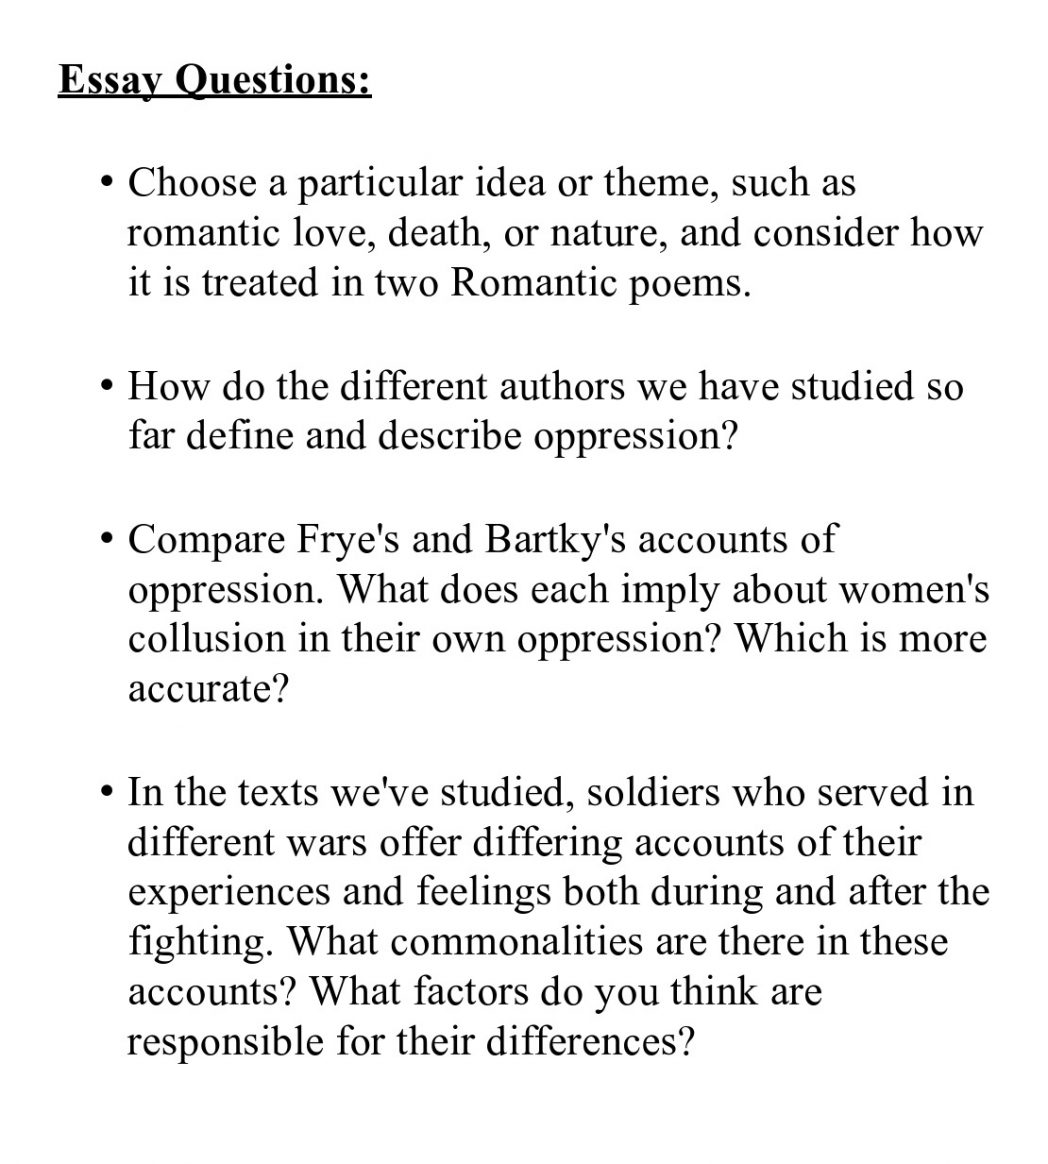 012 Nyu Essay Question Questions For Essays Cover Letter Ques Best College Application Funny Prompt 1048x1164 Wondrous Tisch Undergraduate Full